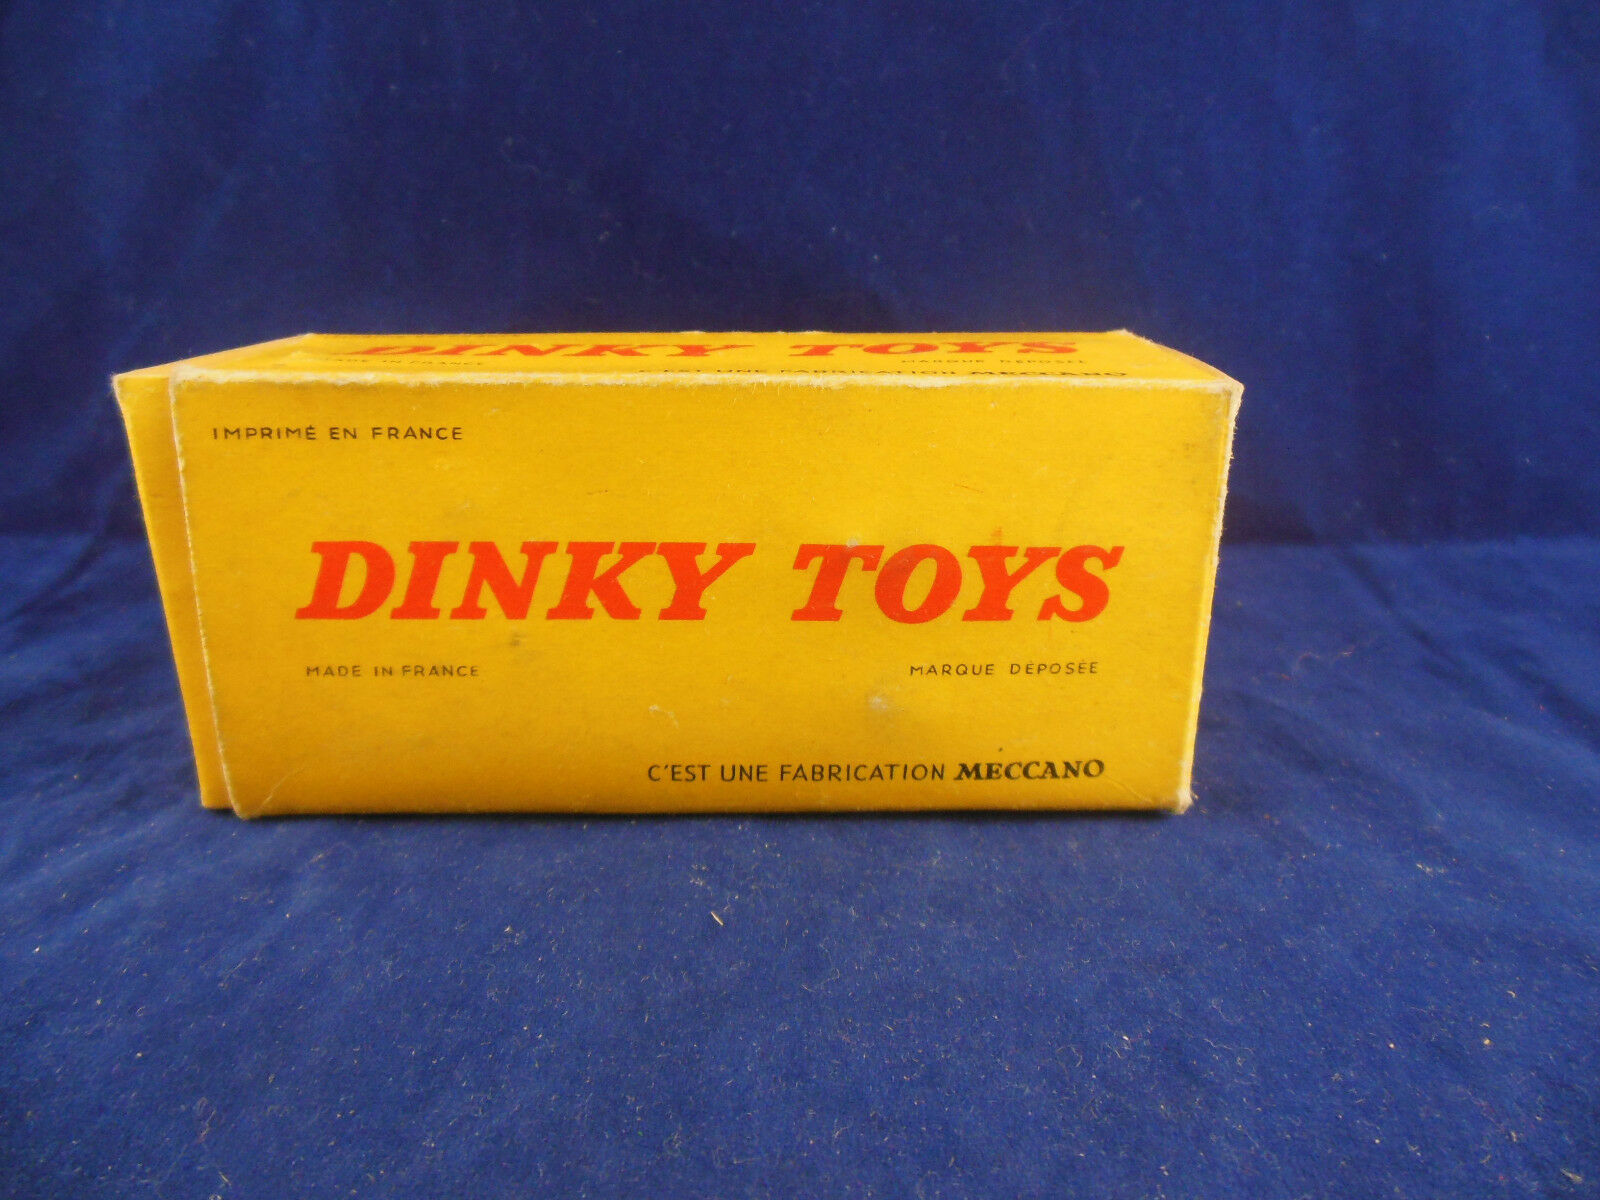 DINKY TOYS 80C CHAR a.m.x 13 tonnellate tonnellate tonnellate Tank Made in France 2b9a17